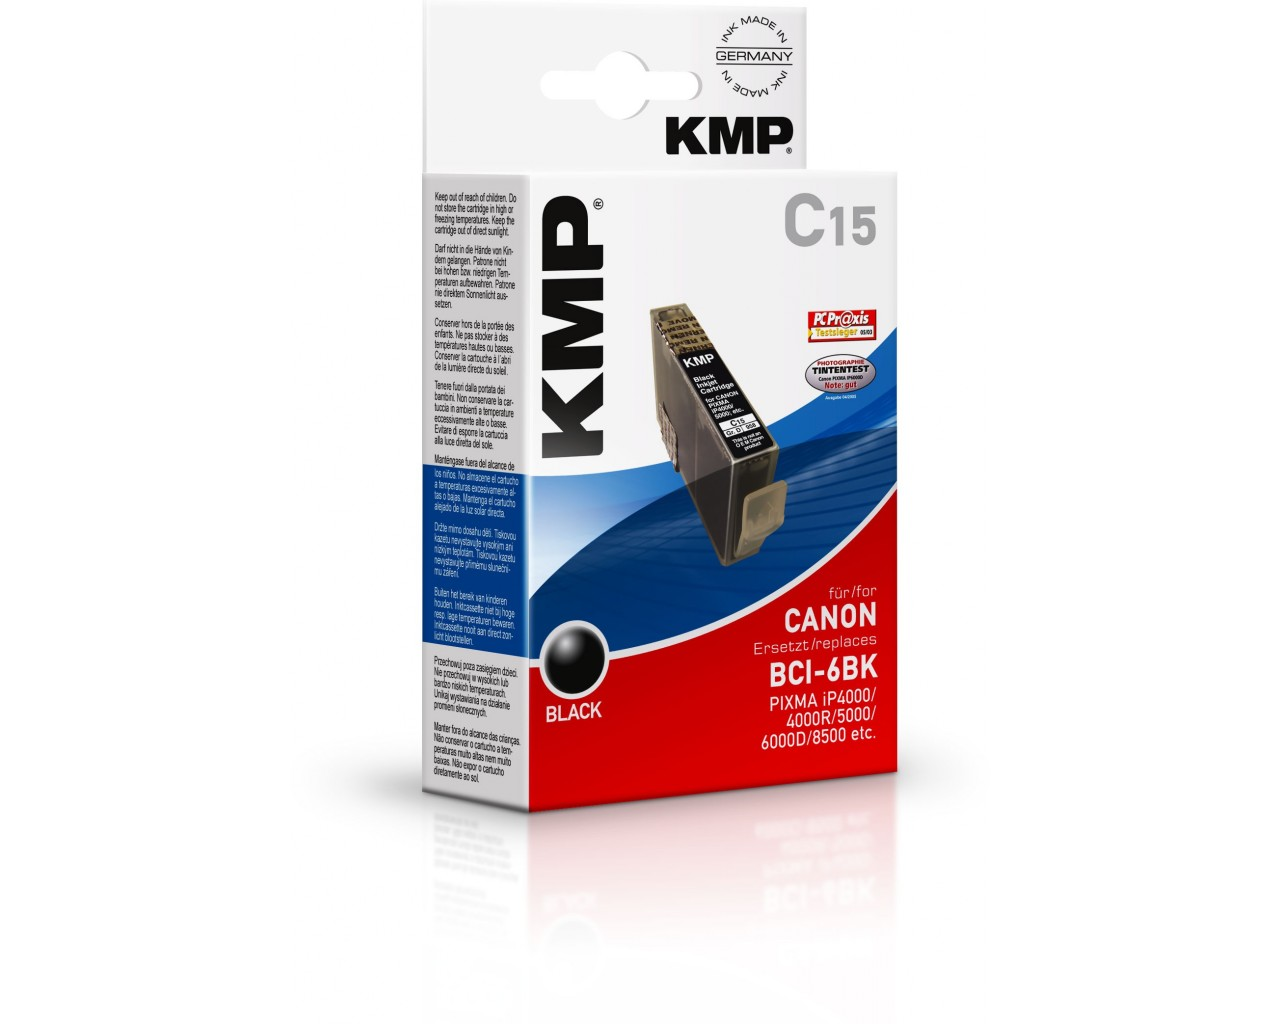 KMP Canon C15 photo ink cartridge černá 17ml